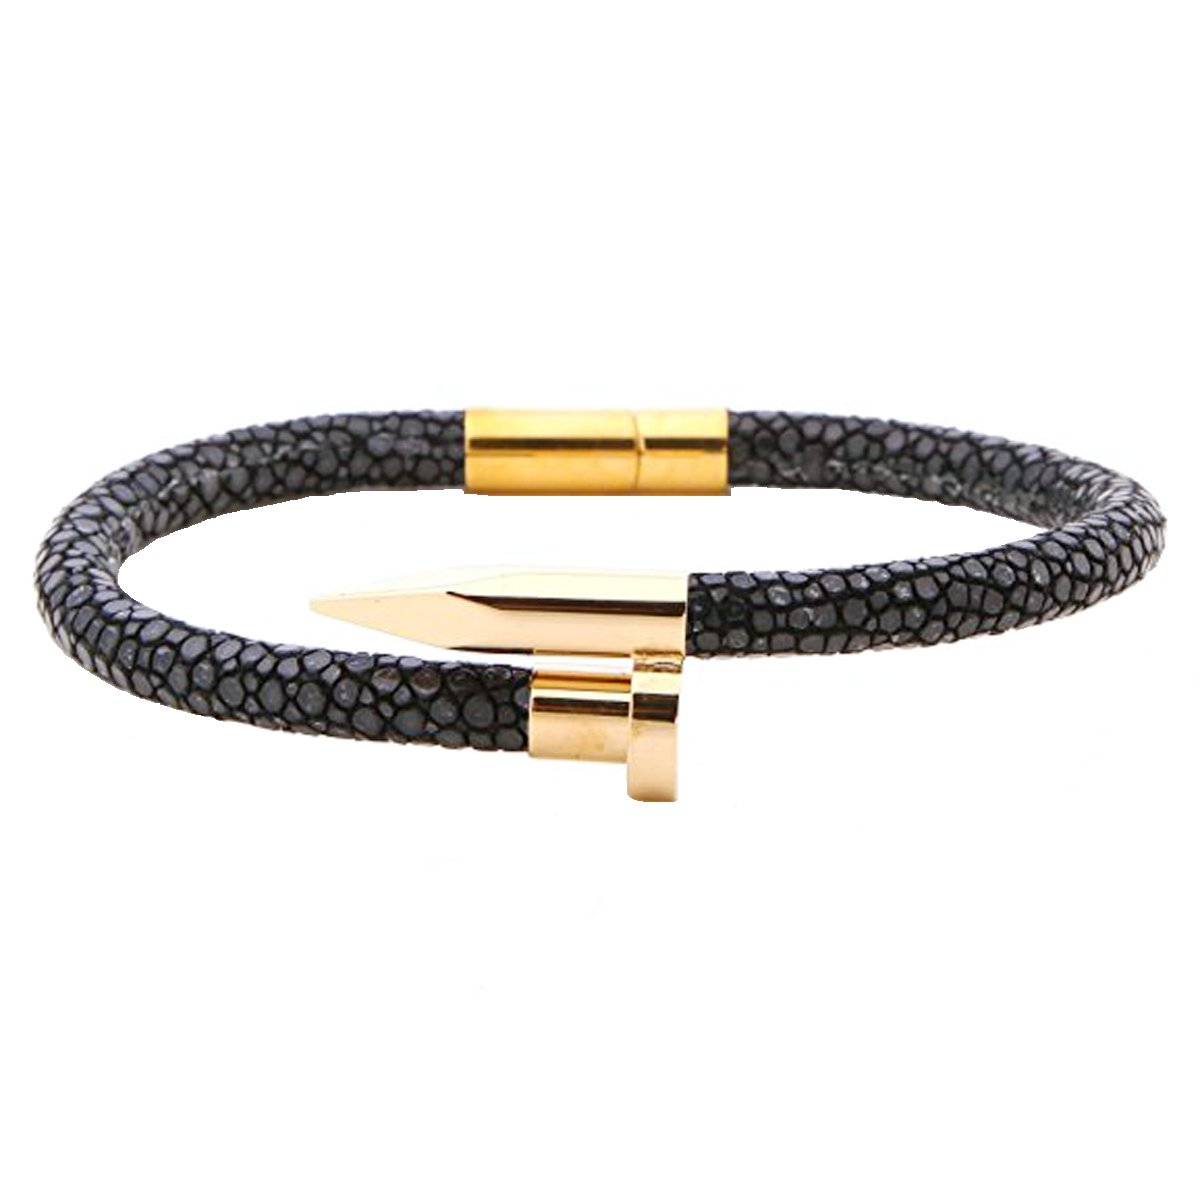 Black stingray leather cord with high polished stainless steel nail bracelet (7 inches)